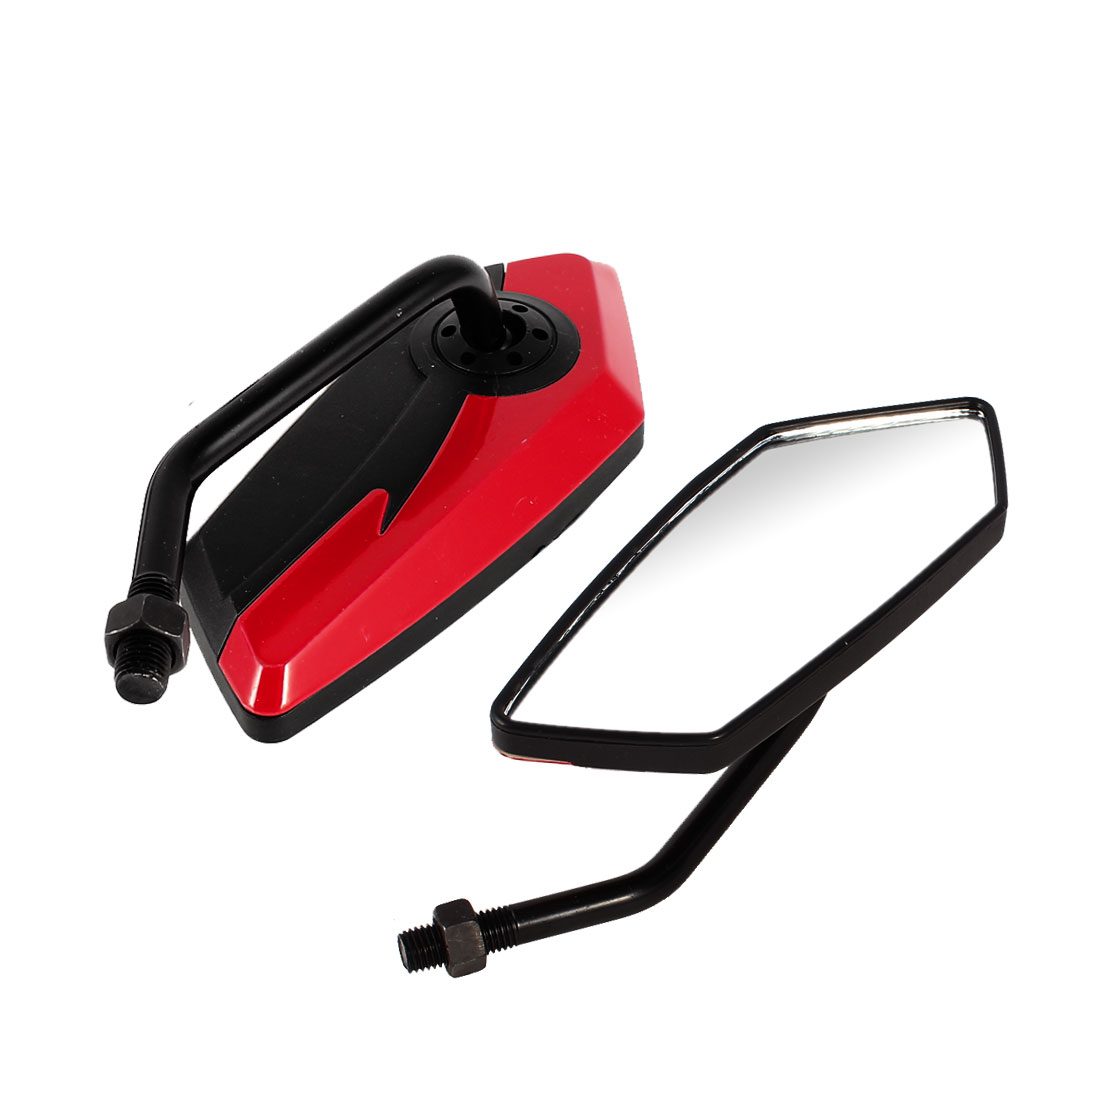 2 Pcs Black Red Shell Adjustable Rearview Motorcycle Blind Spot Mirrors